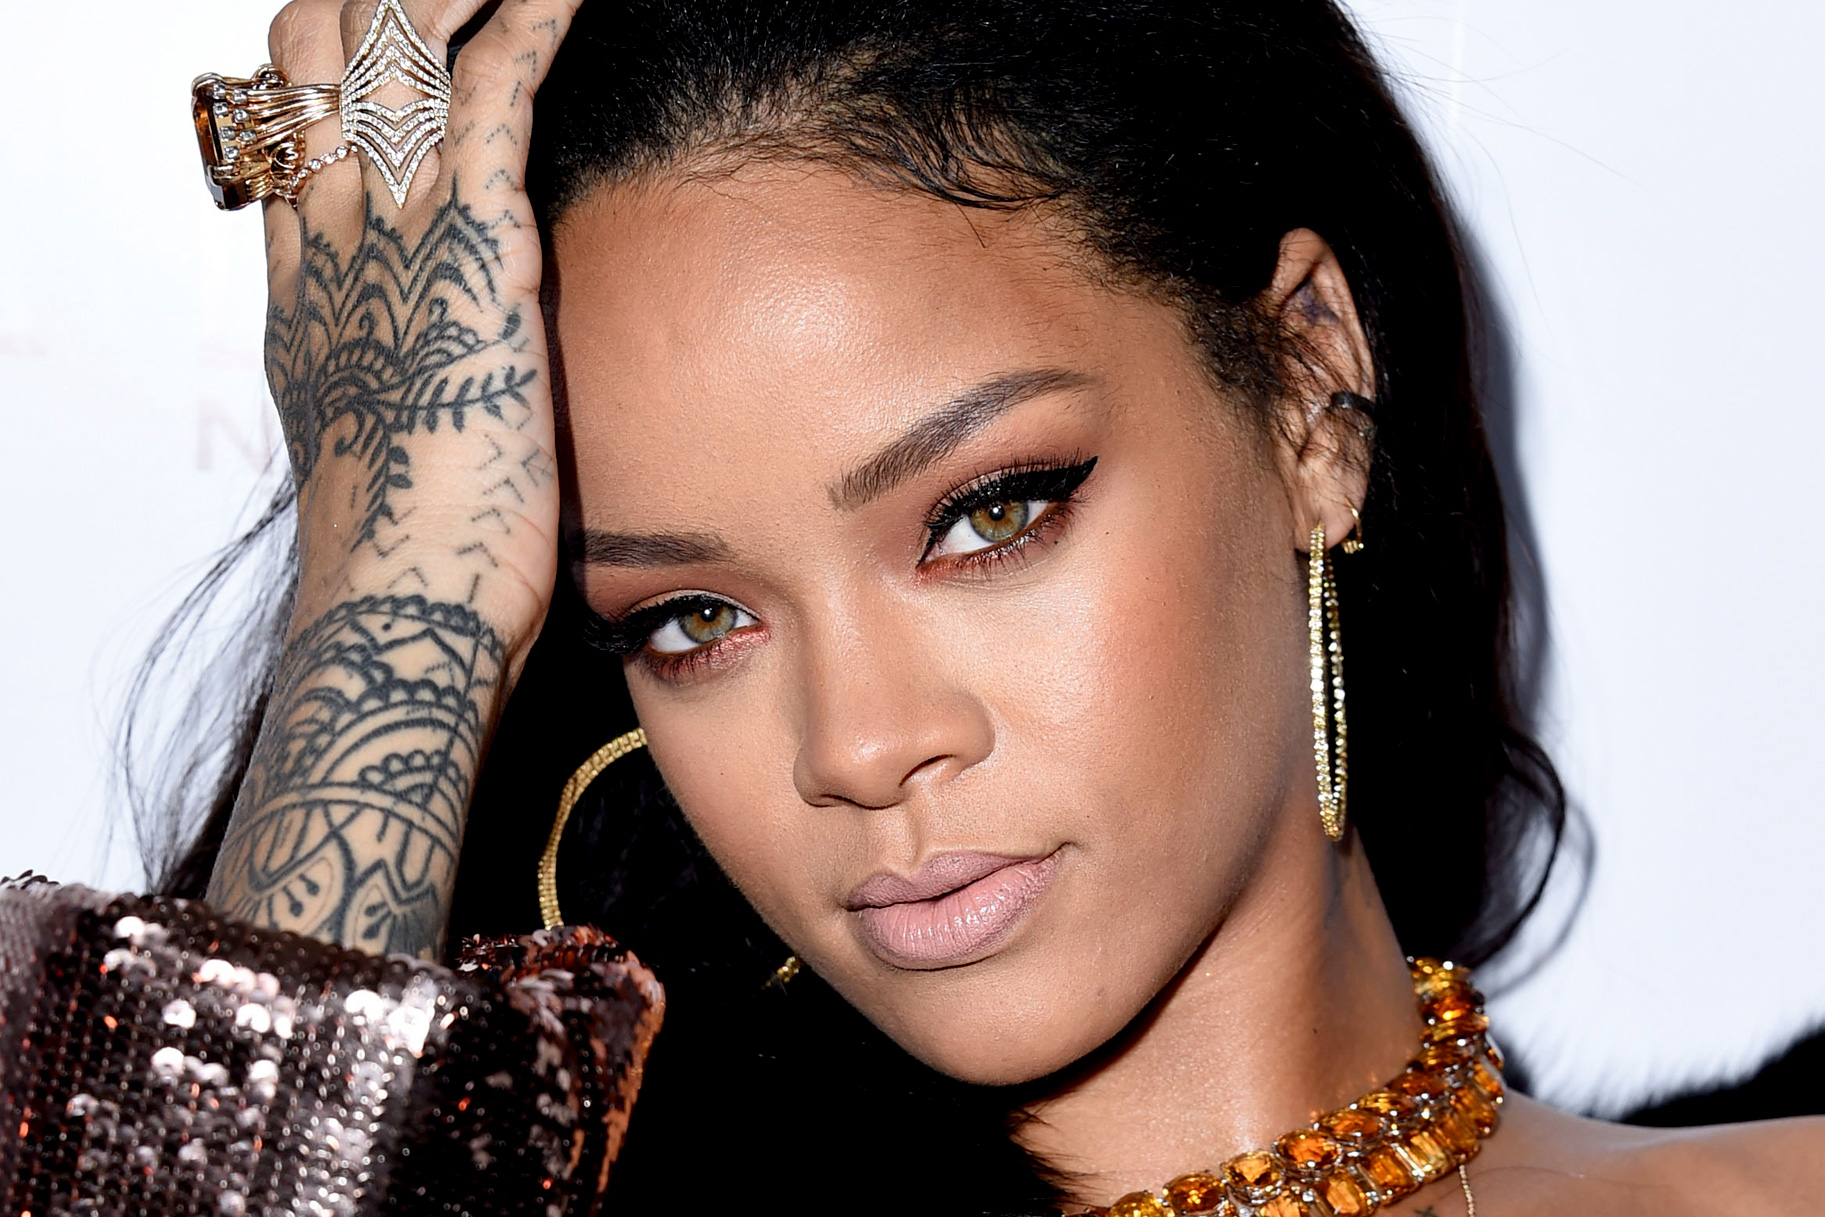 Rihanna Hand Tattoos 434.66 Kb